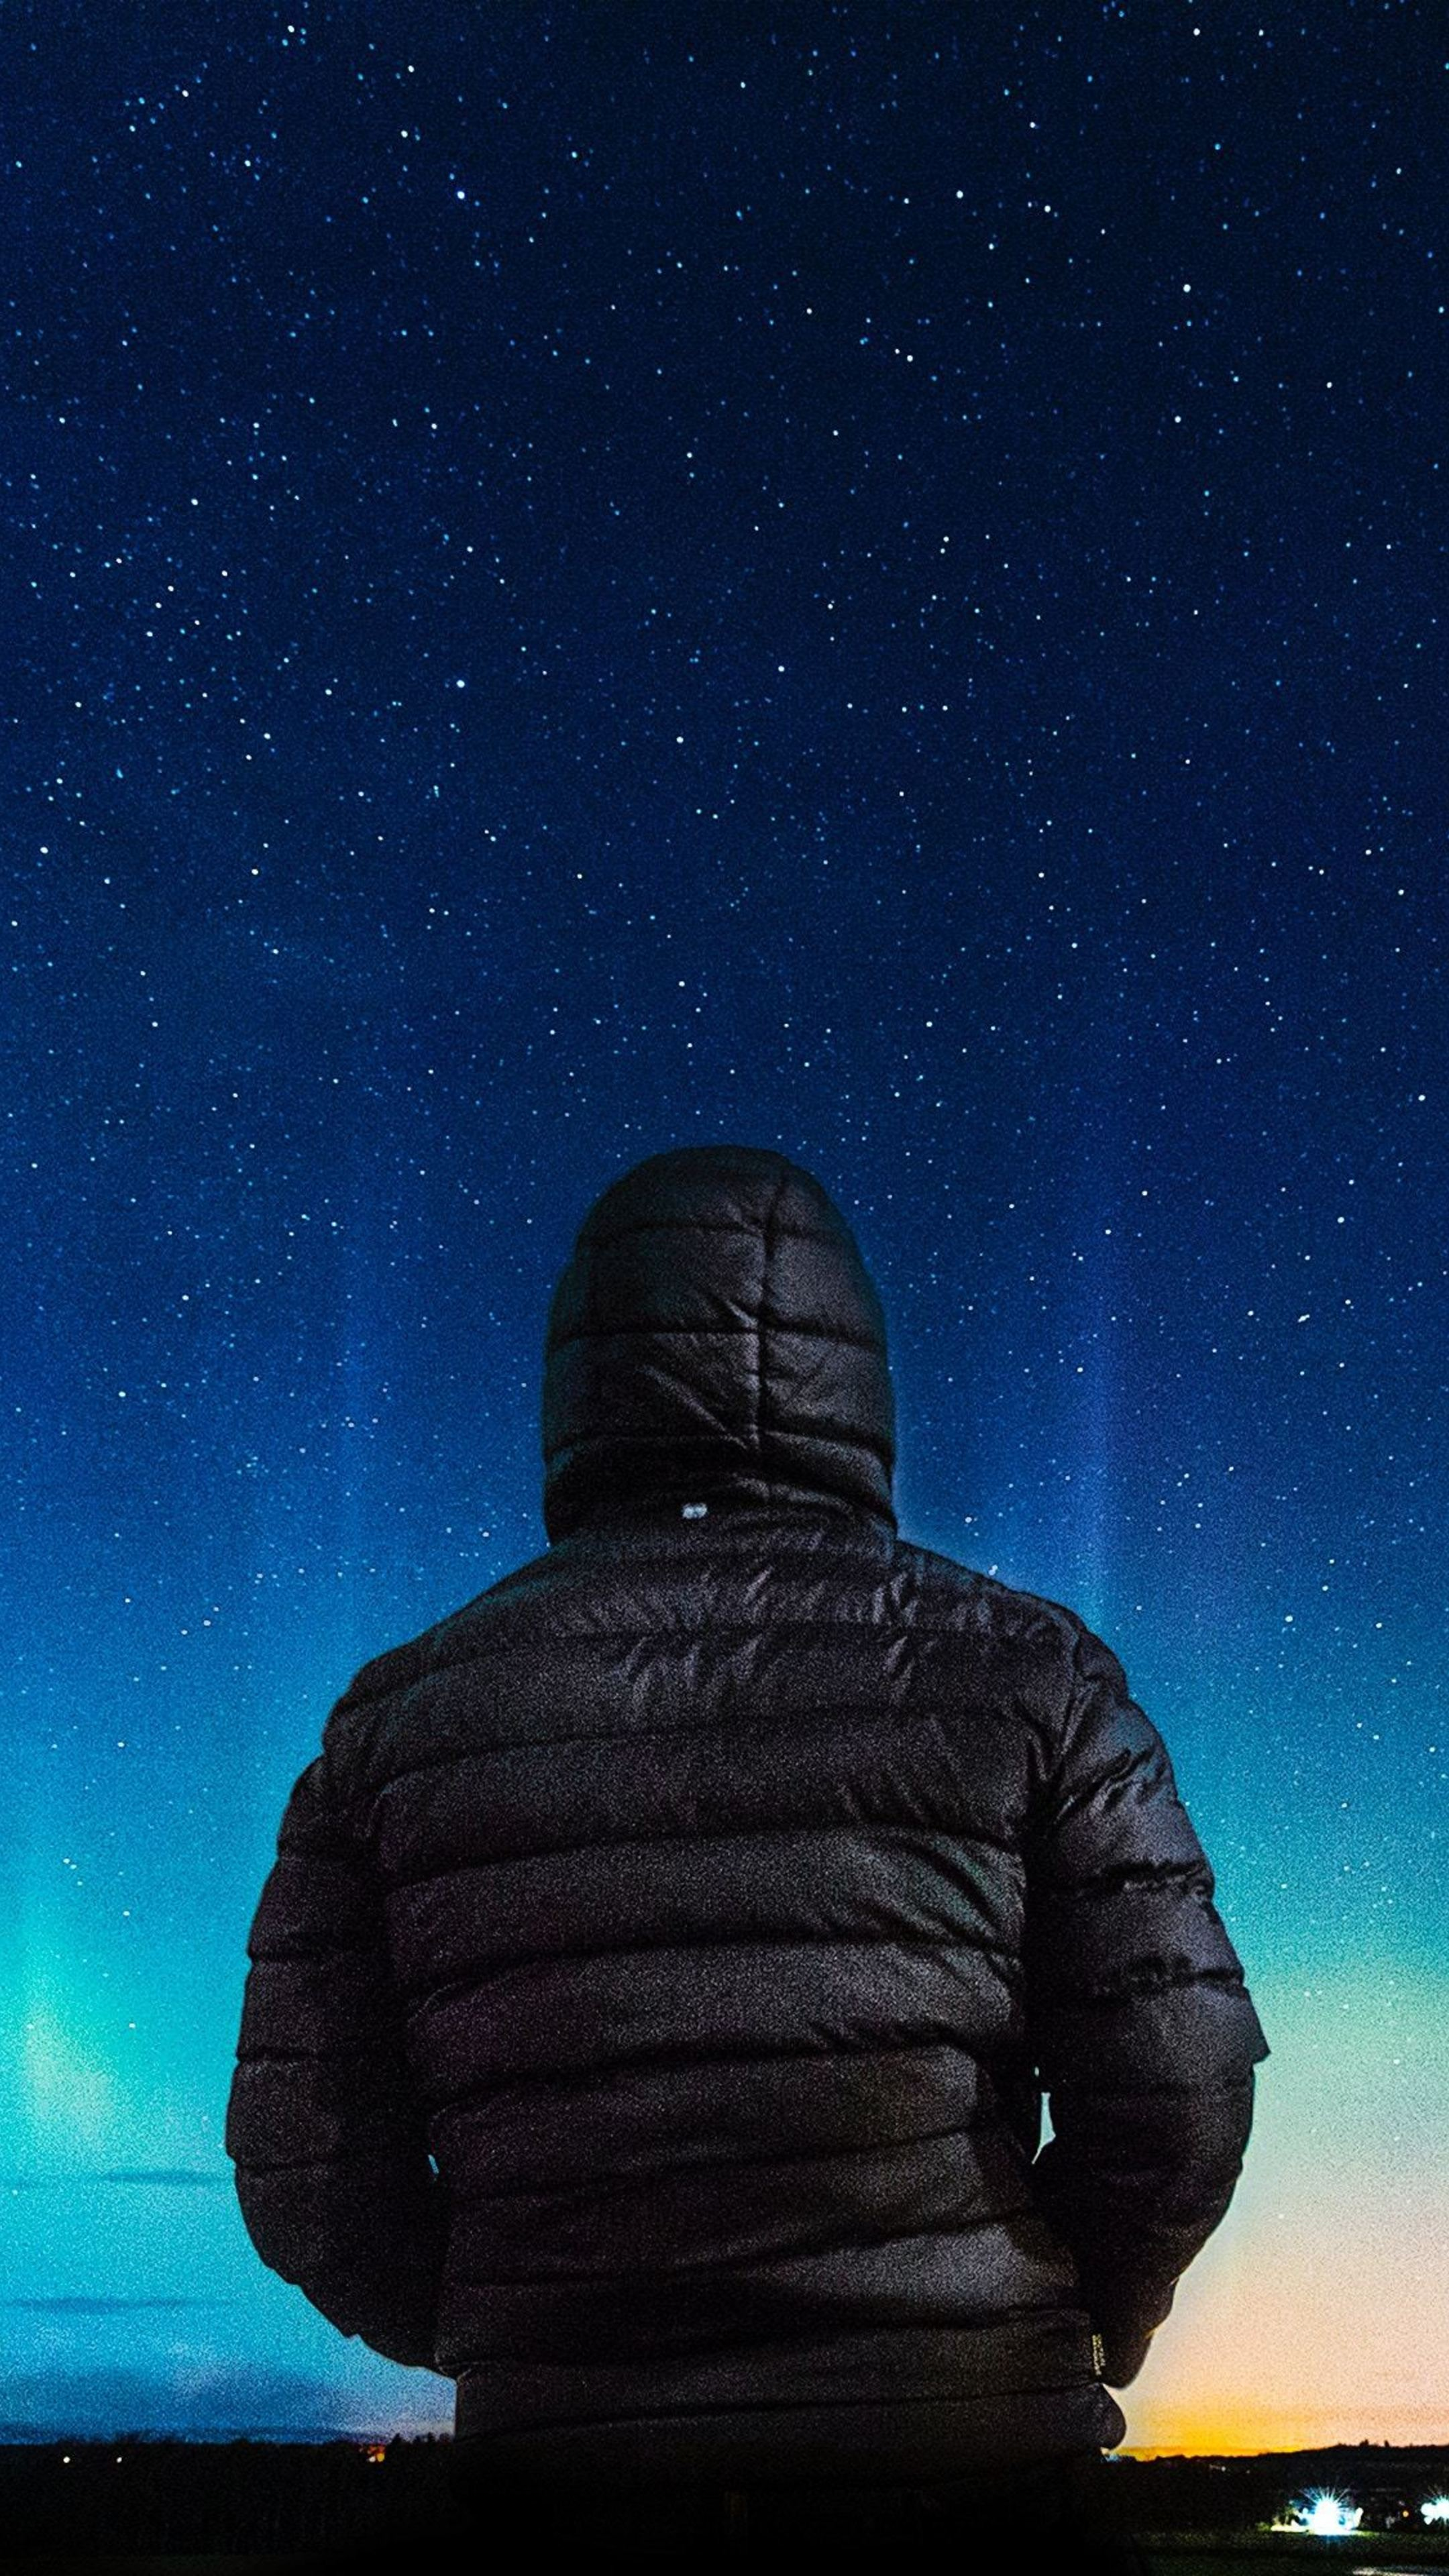 Alone boy in hoodie looking towards colorful sky g0 wallpaper 2160x3840